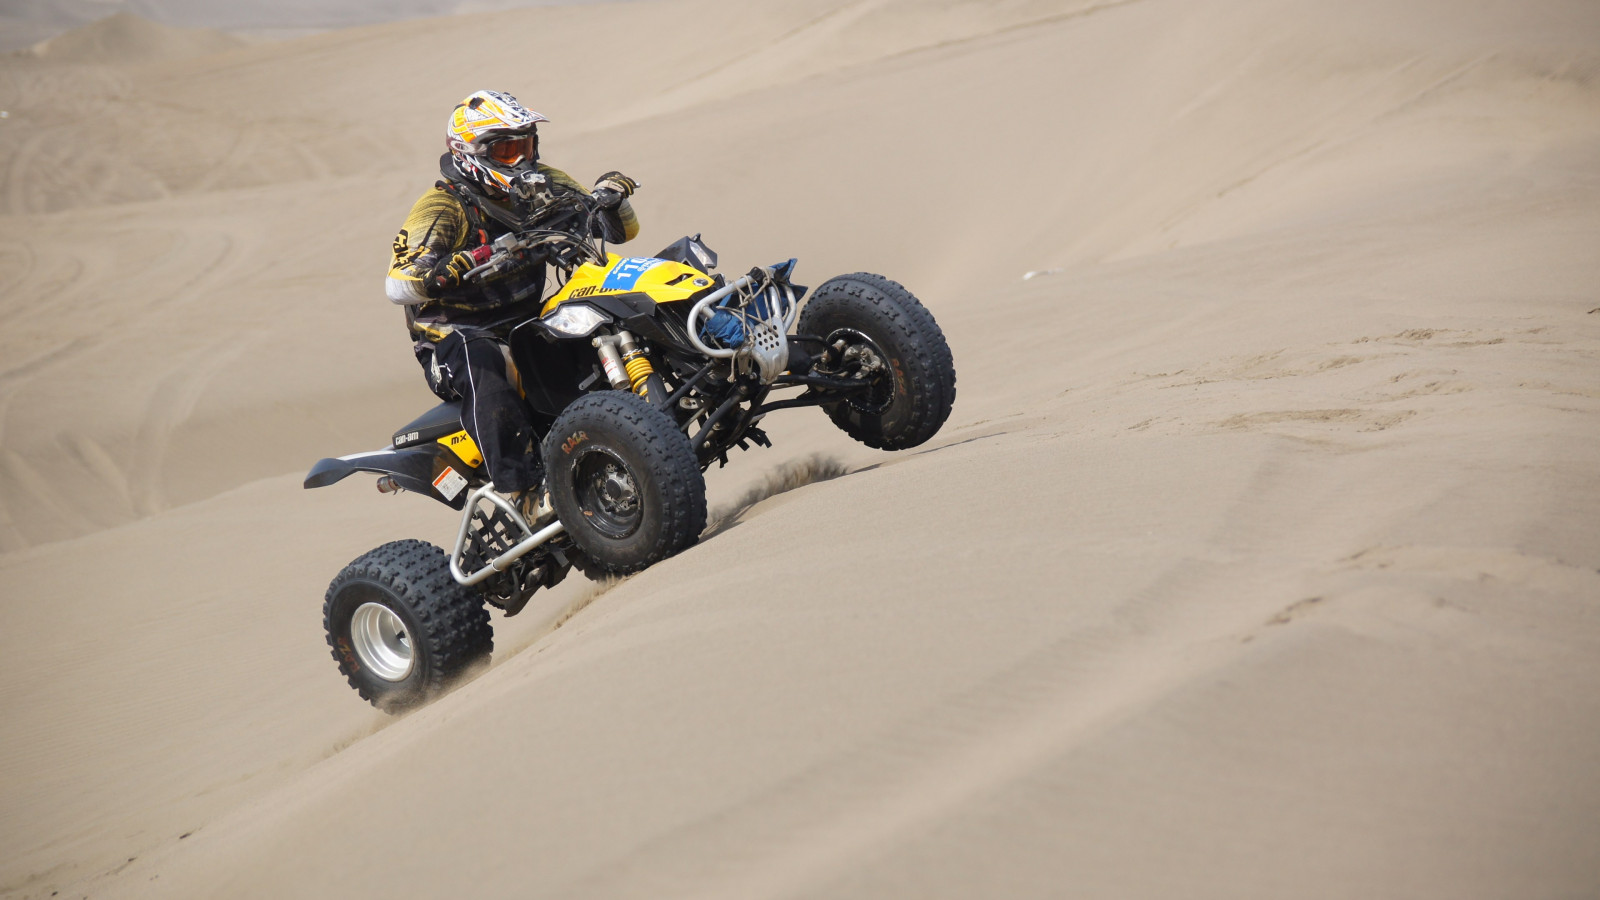 Racing with ATV | 1600x900 wallpaper